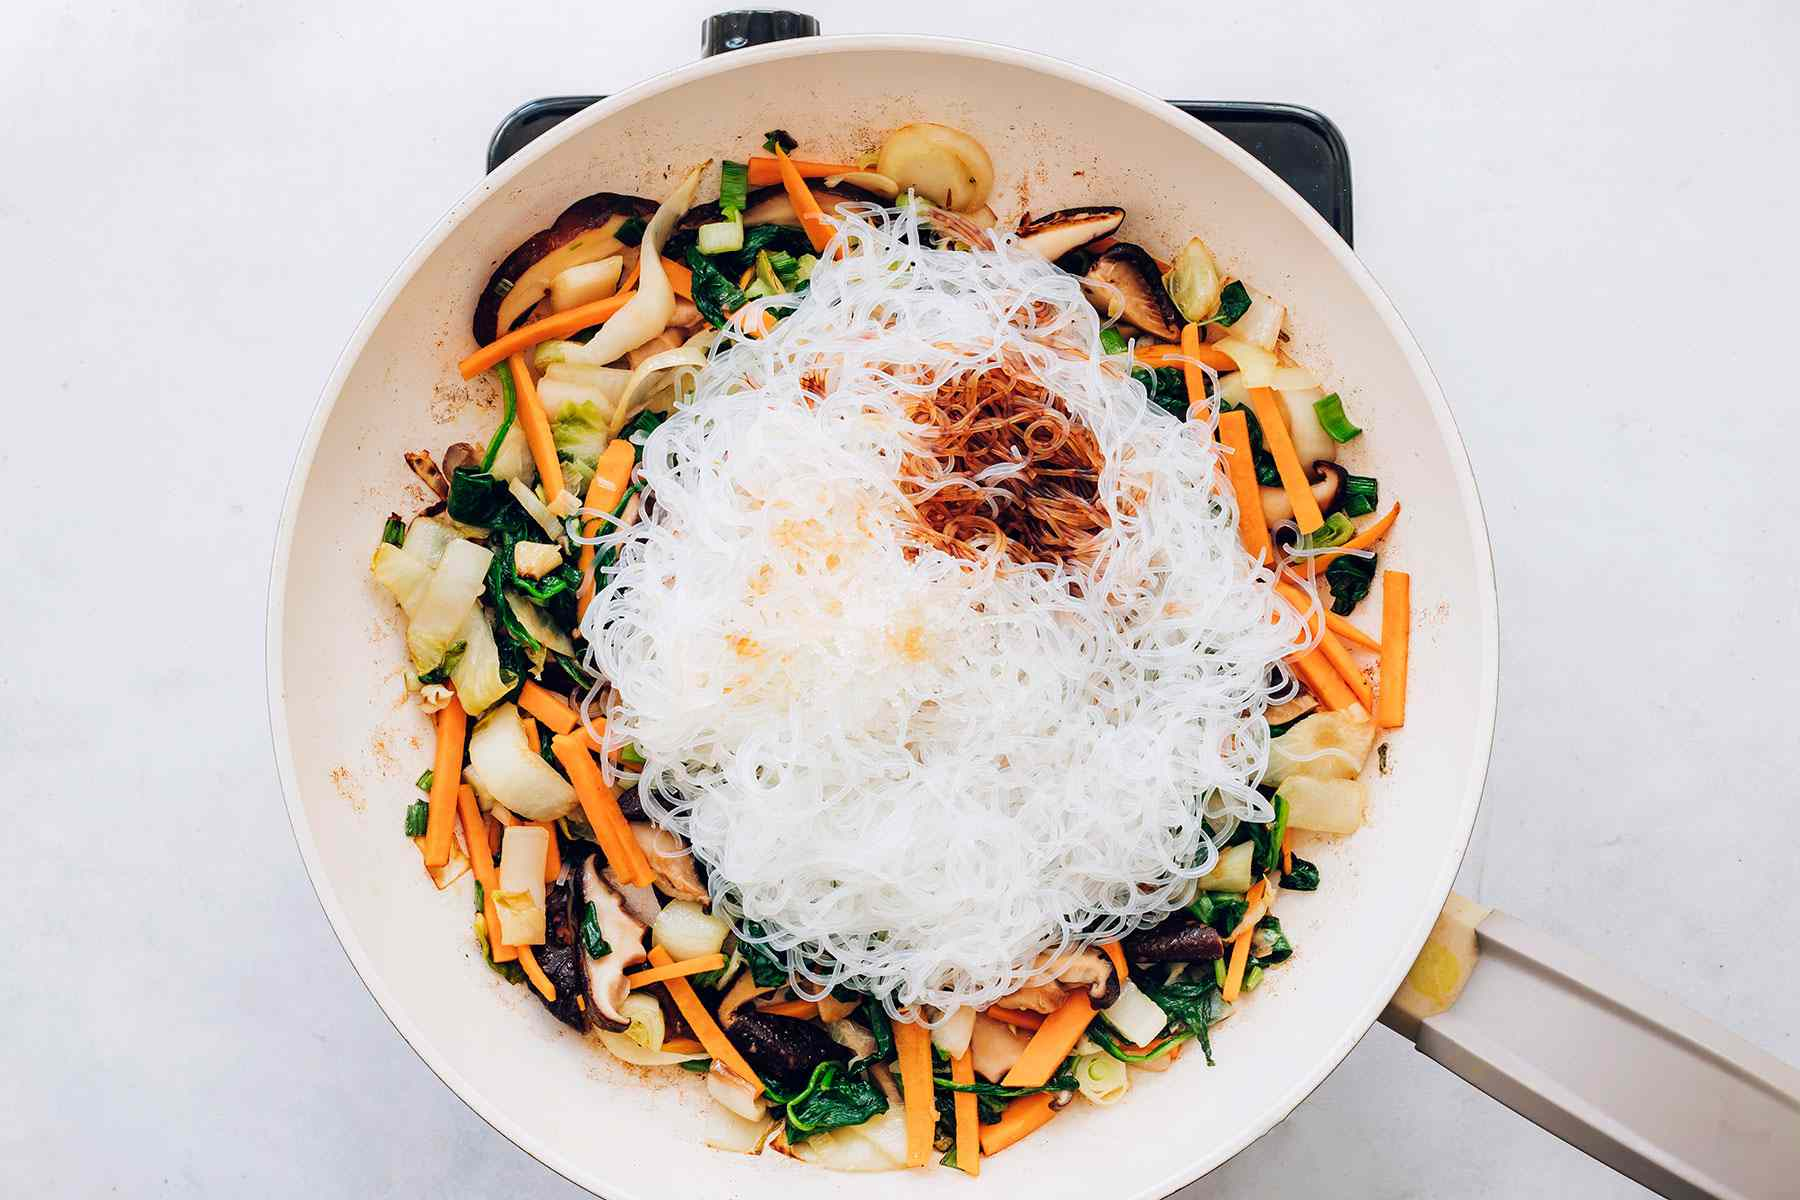 vegetables, noodles, and sauce in a pan